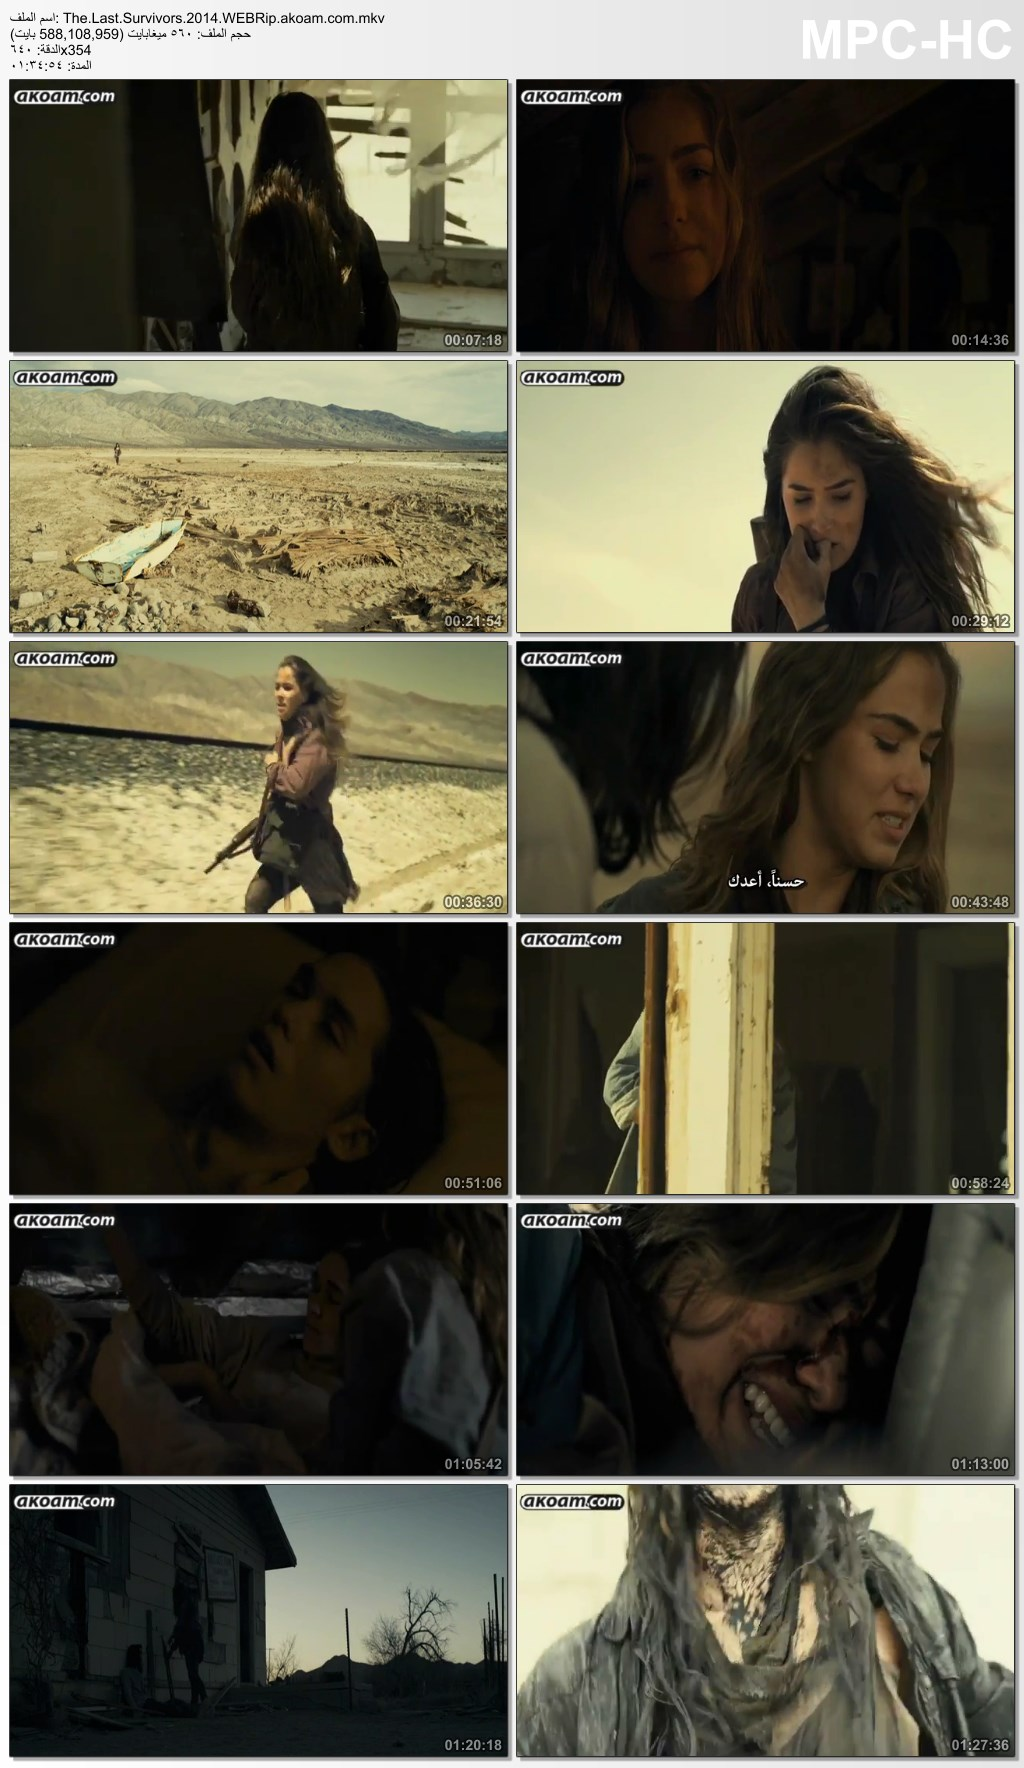 The Last Survivors,The Last Survivors 2014,The Well,Last,Survivors,الأكشن,الرعب,التشويق,الاثارة,الإثارة,المثيرة,Haley Lu Richardson,Booboo Stewart